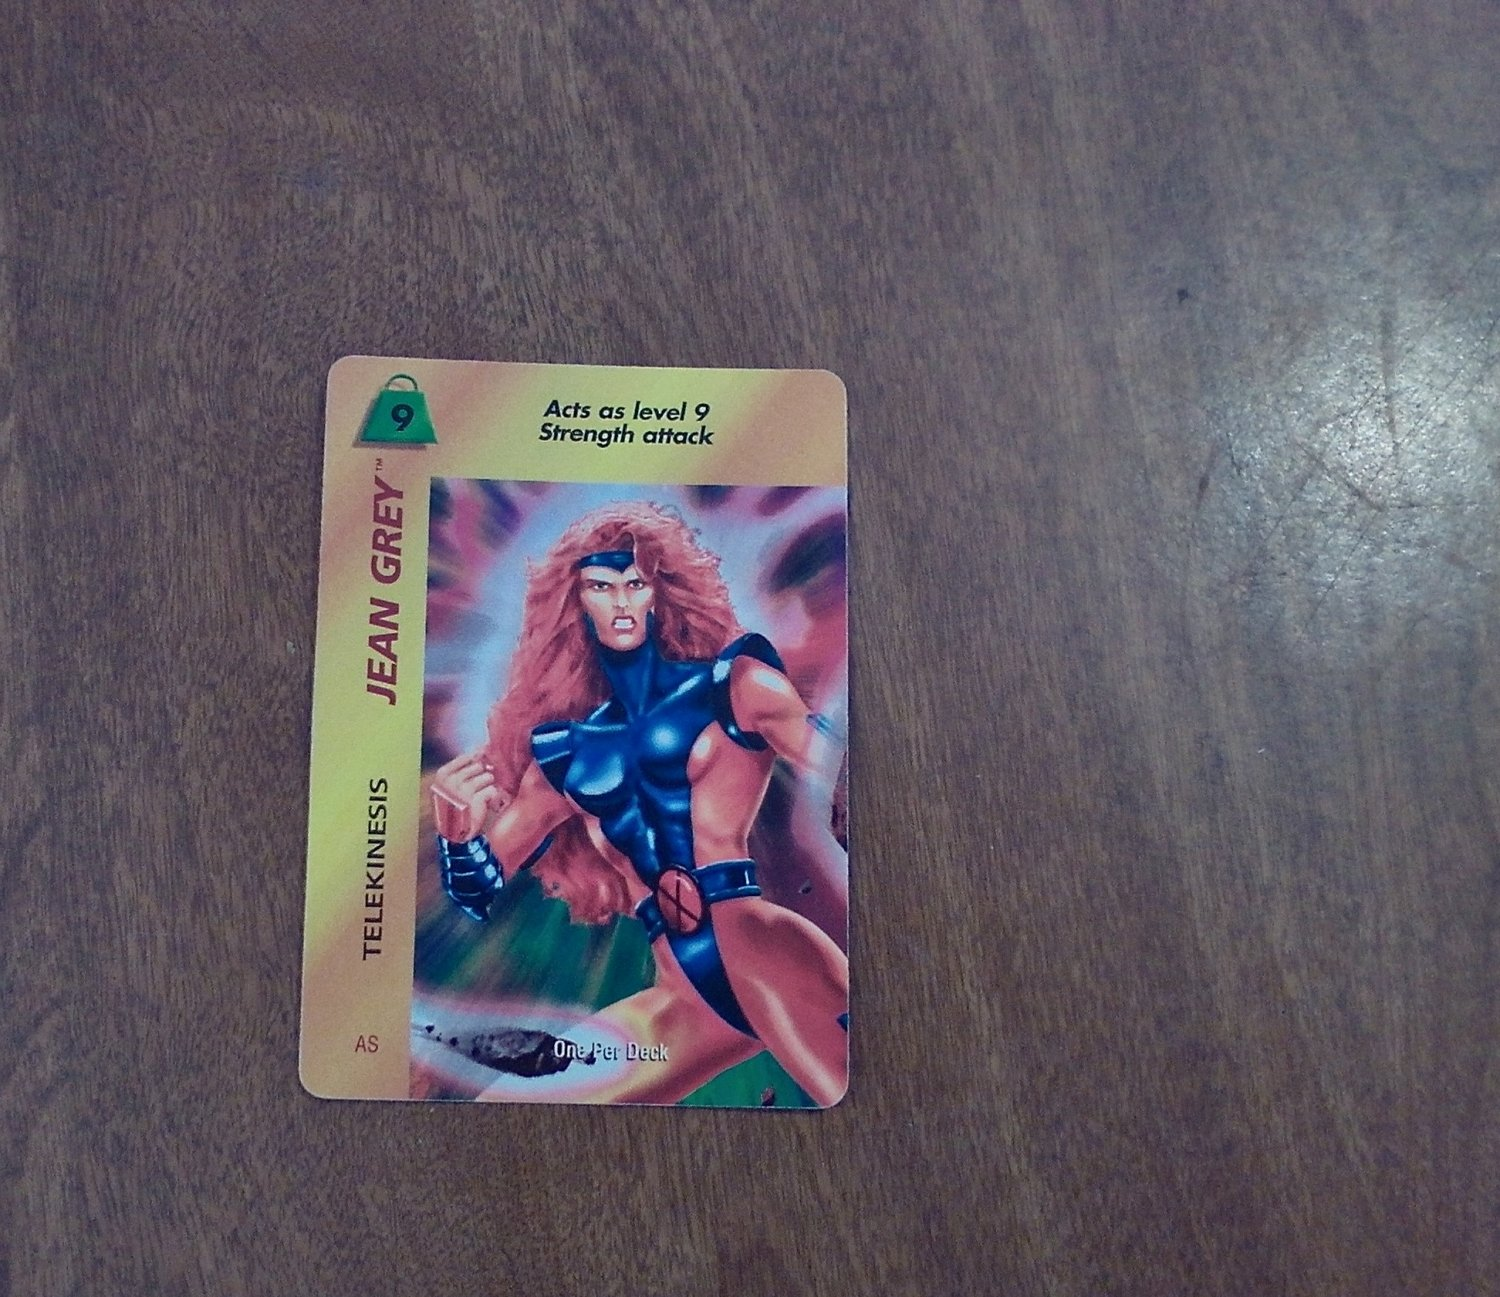 Marvel OverPower - Jean Grey - Telekinesis No. 132 AS S9 Common, Special Character Card (1995) Fleer